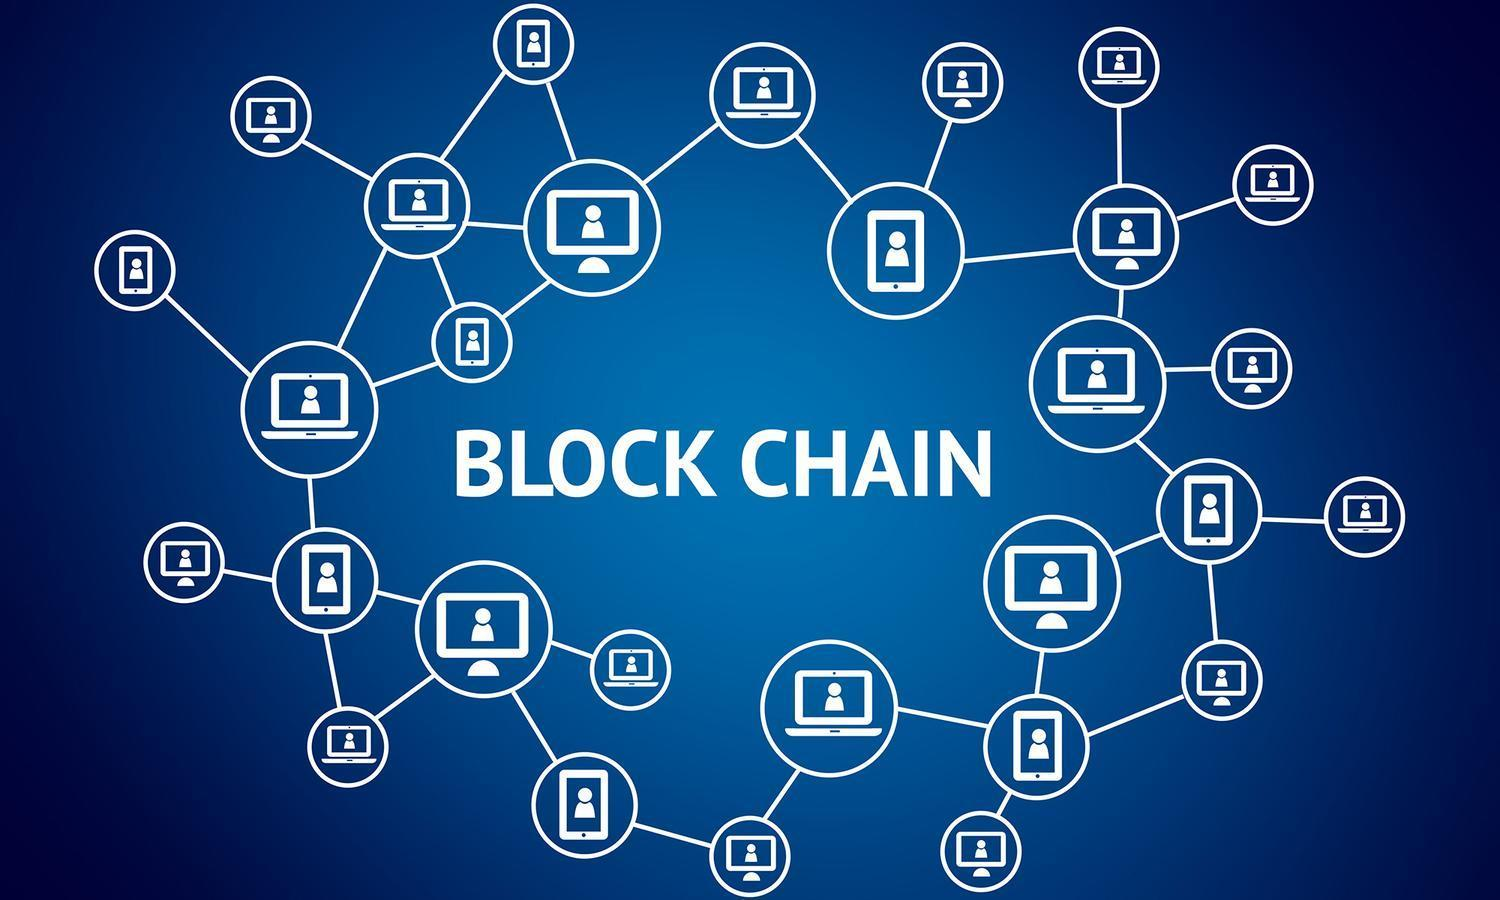 NITI Aayog working on strategies to identify areas where blockchain can be implemented